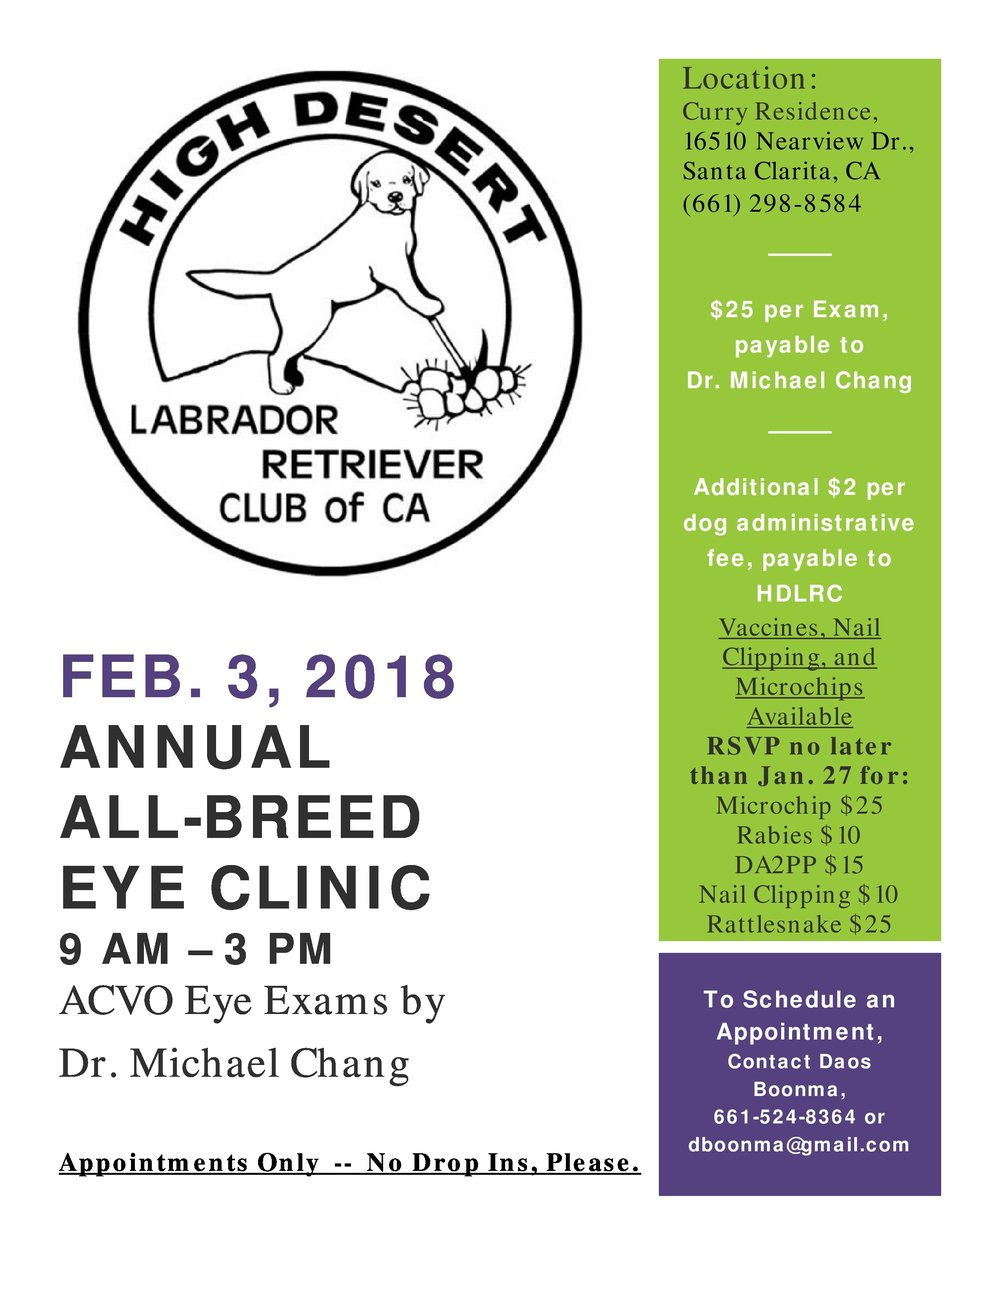 Eye Clinic Flyer 2018.jpg